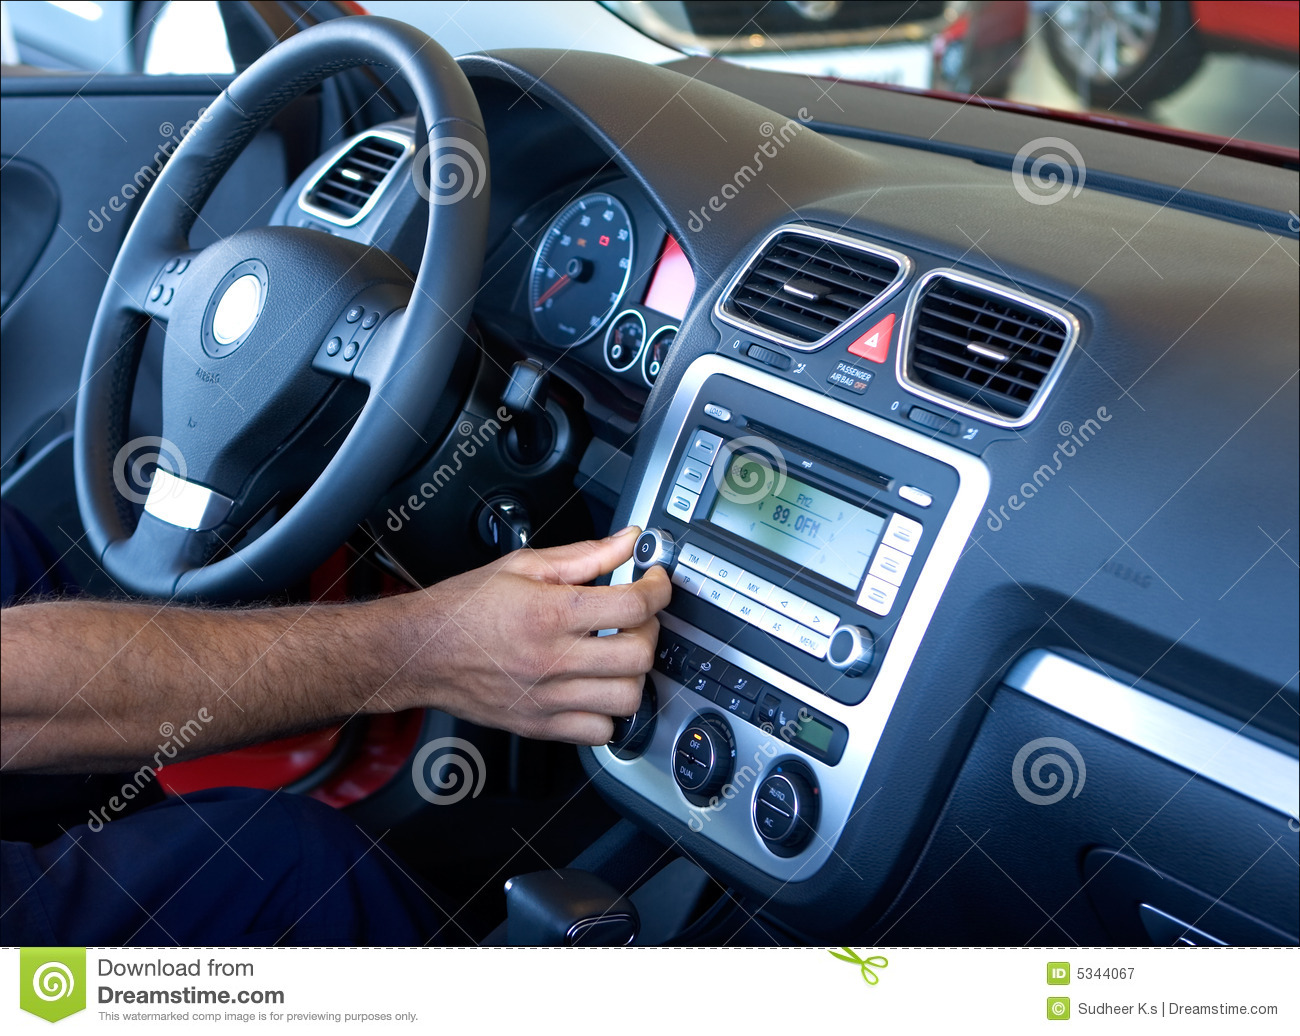 Tuning car radio stock image. Image of accessories, workshop 5344067.